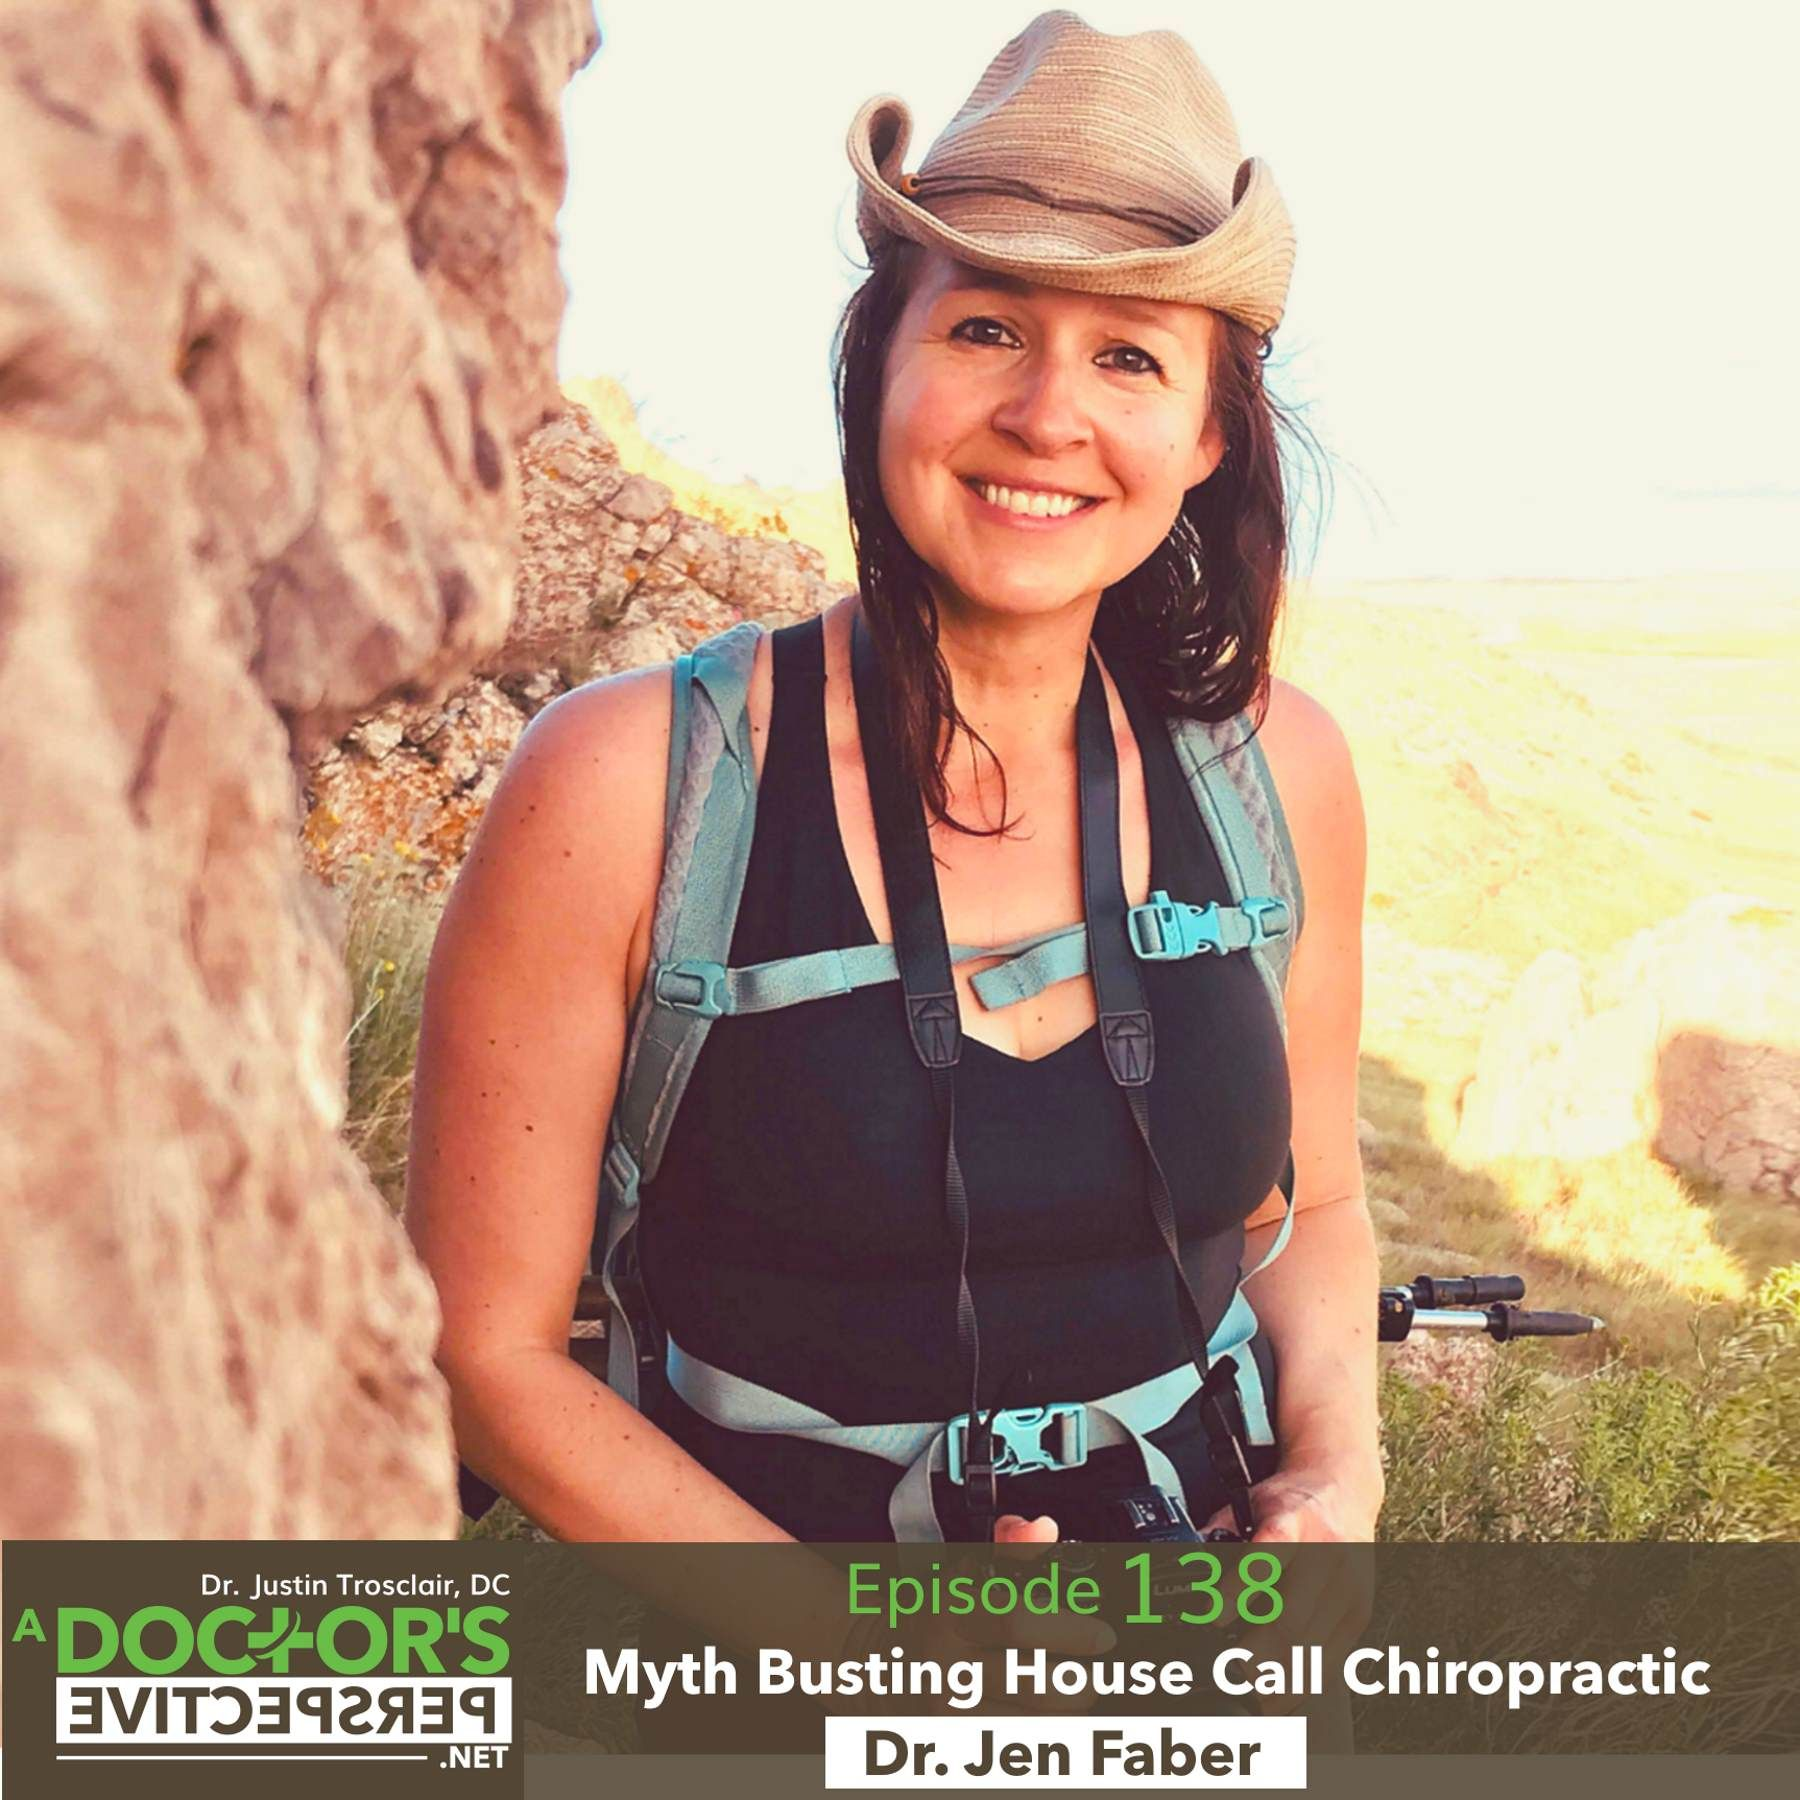 E 138 myth busting house call chiropractic dr jen faber